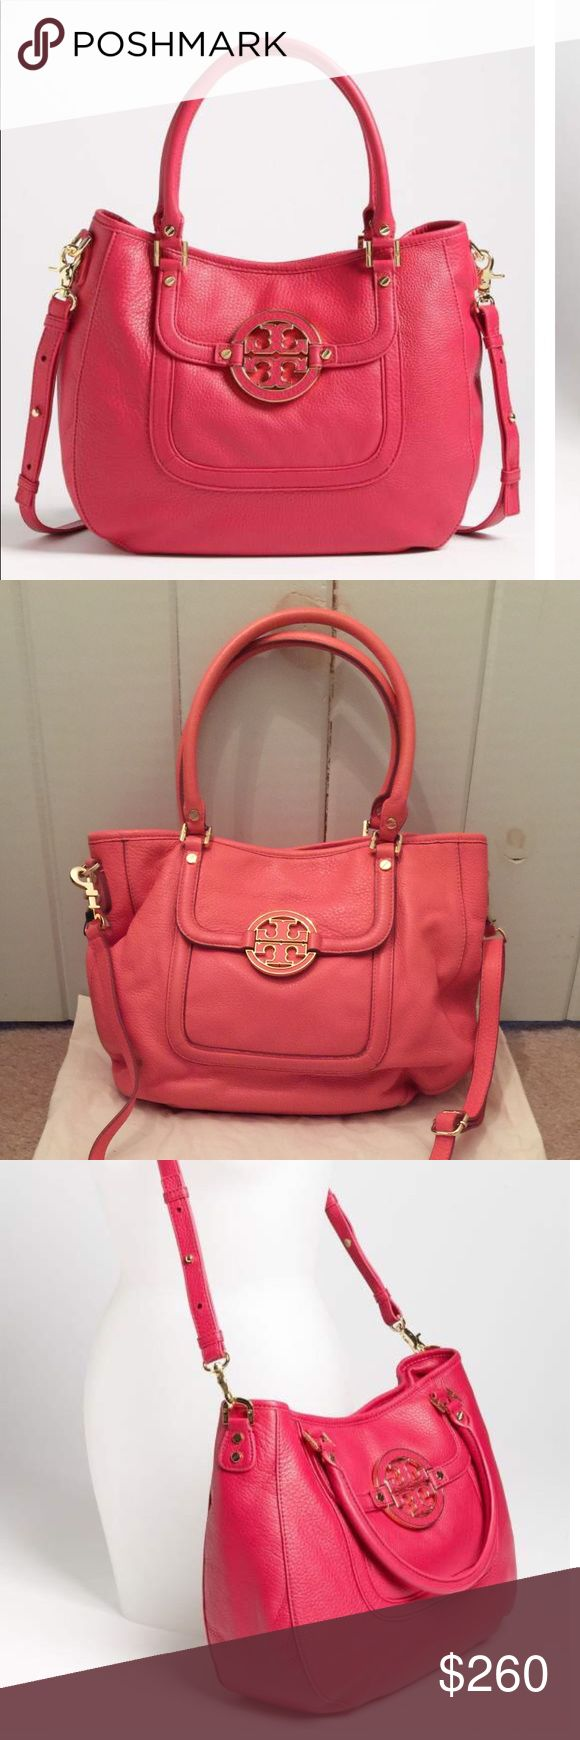 🆕 Tory Burch Amanda Hobo Bag 💯% authentic Tory Burch Amanda Hobo Bag EUC pebbled leather with gold hardware magnetic snap button closure front flap pocket with iconic double T stacked logo medallion logo jacquard lining 1 leather trimmed interior zip pocket 2 interior slip pockets tubular handles gold nail head  metal feet on bottom color pink (dust bag included) Tory Burch Bags Hobos